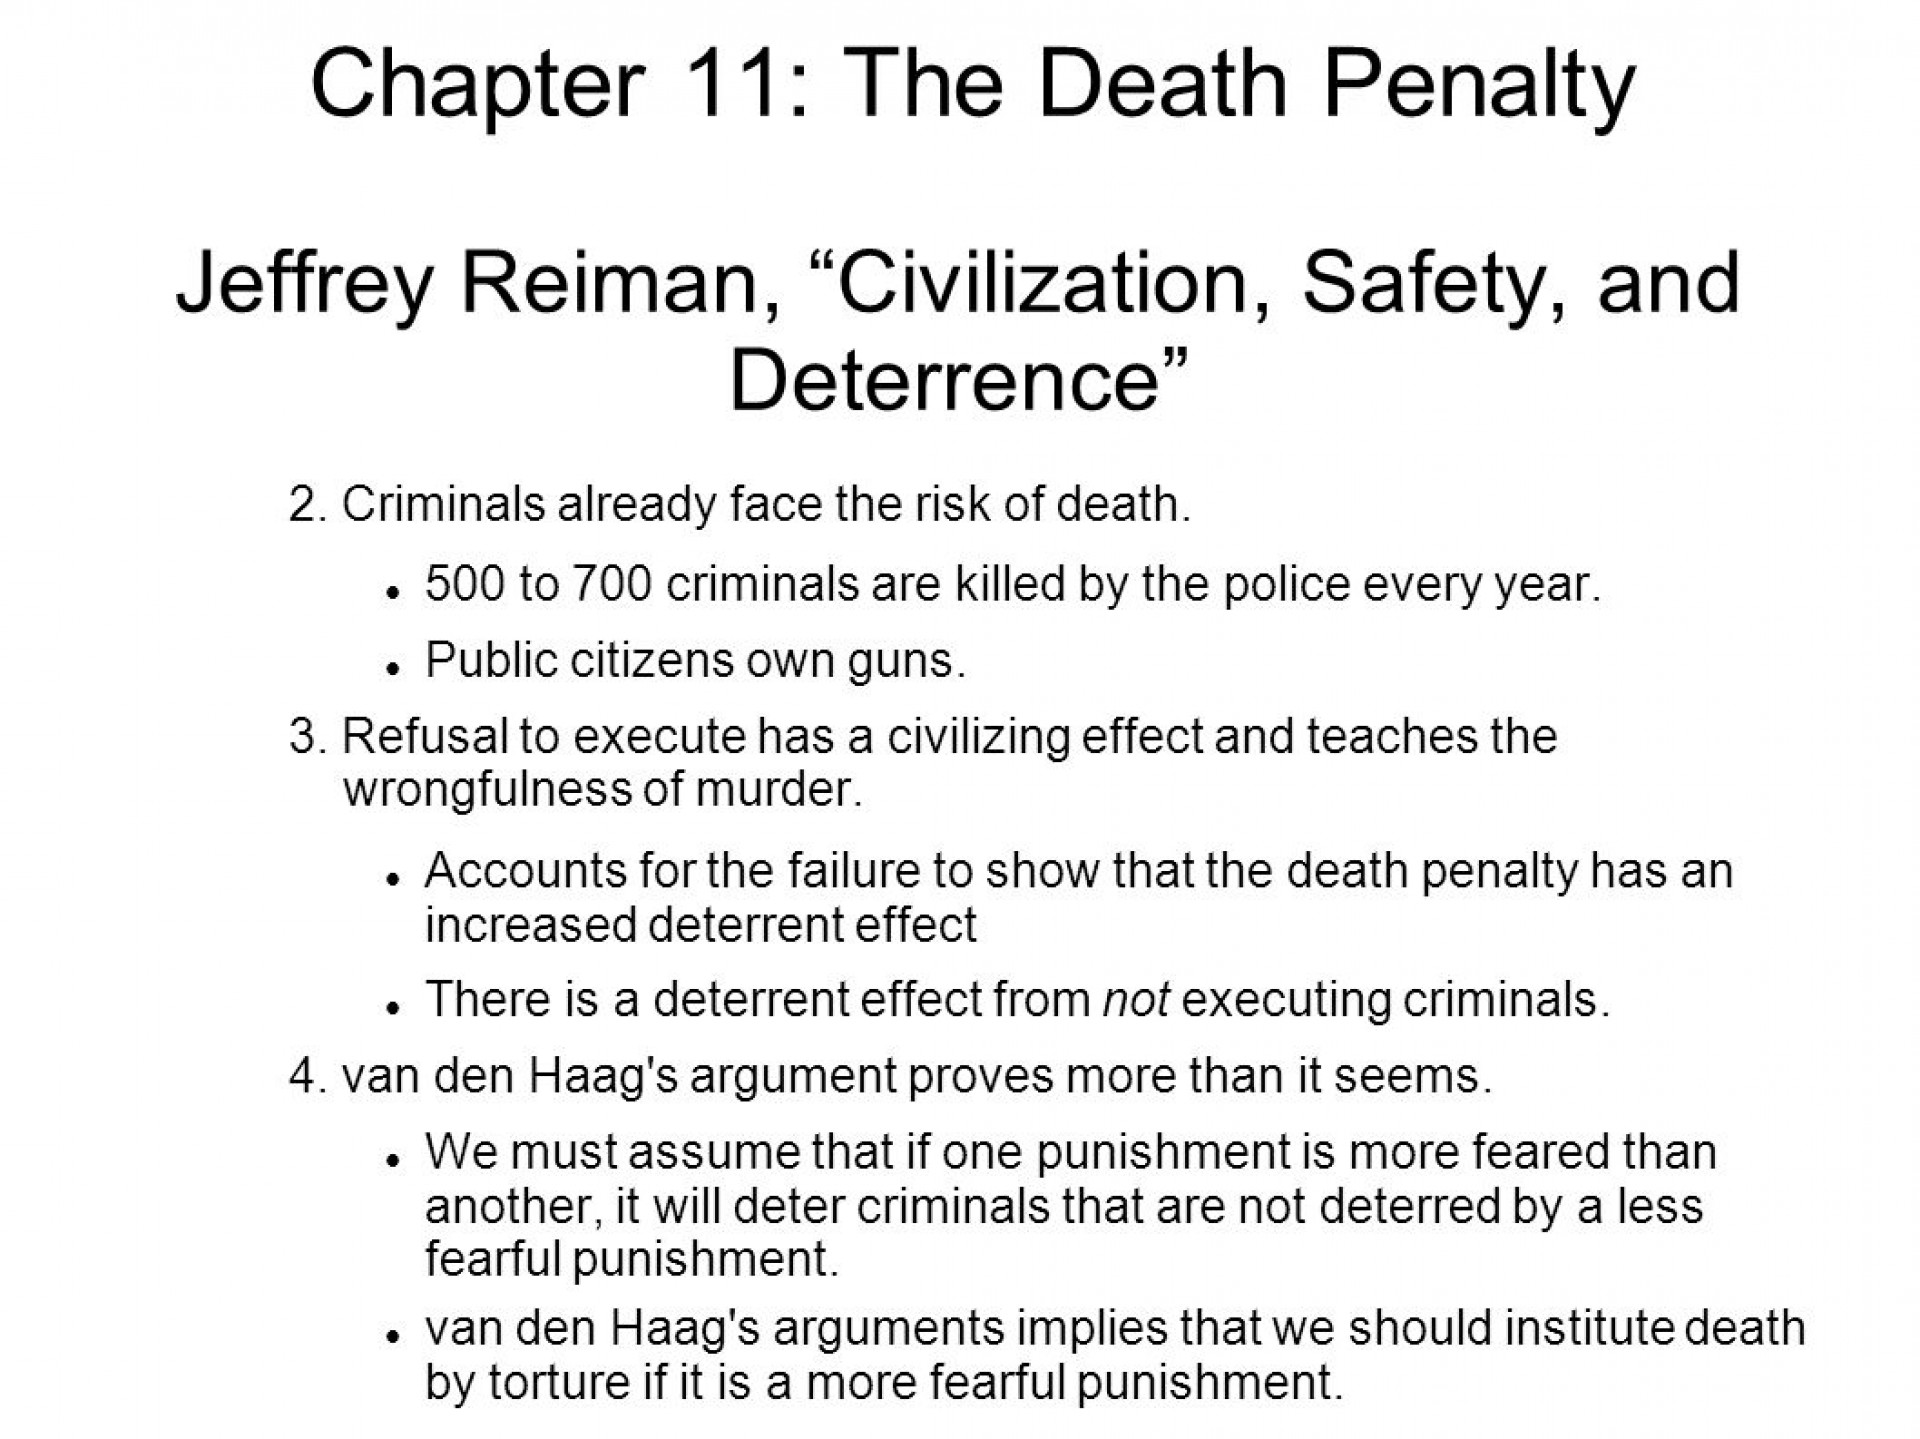 011 Argument Against Death Penalty Essay Fake Writer Arguments For Capital Punishment Sli Unique Anti Tagalog Conclusion Examples 1920